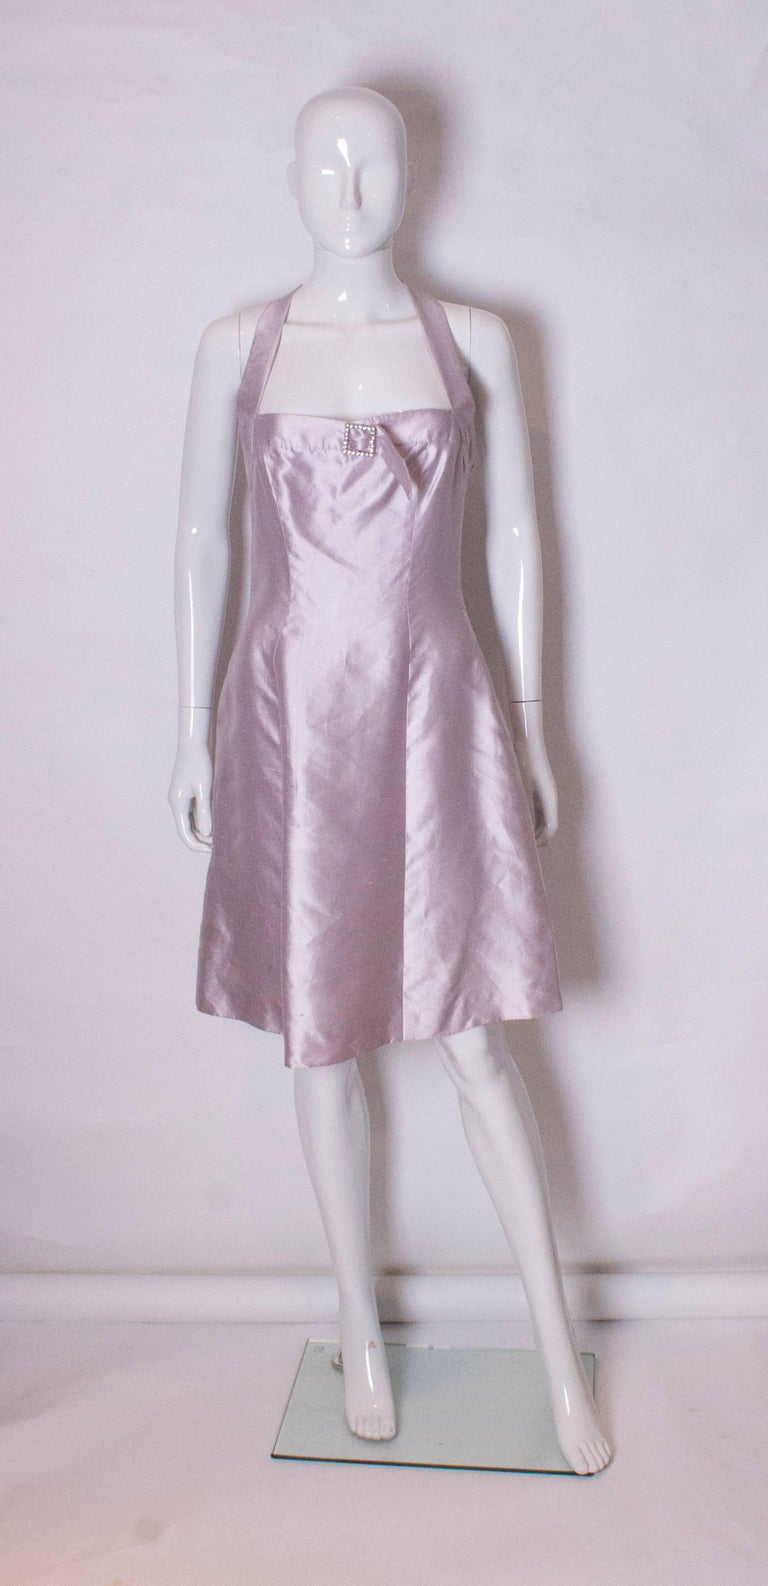 A chic cocktail dress by British designer Bruce Oldfield. The dress is in a pale lilac/ silver silk, and is fully lined. The dress has an interesting t detail at the back and a diamante buck on the bust.